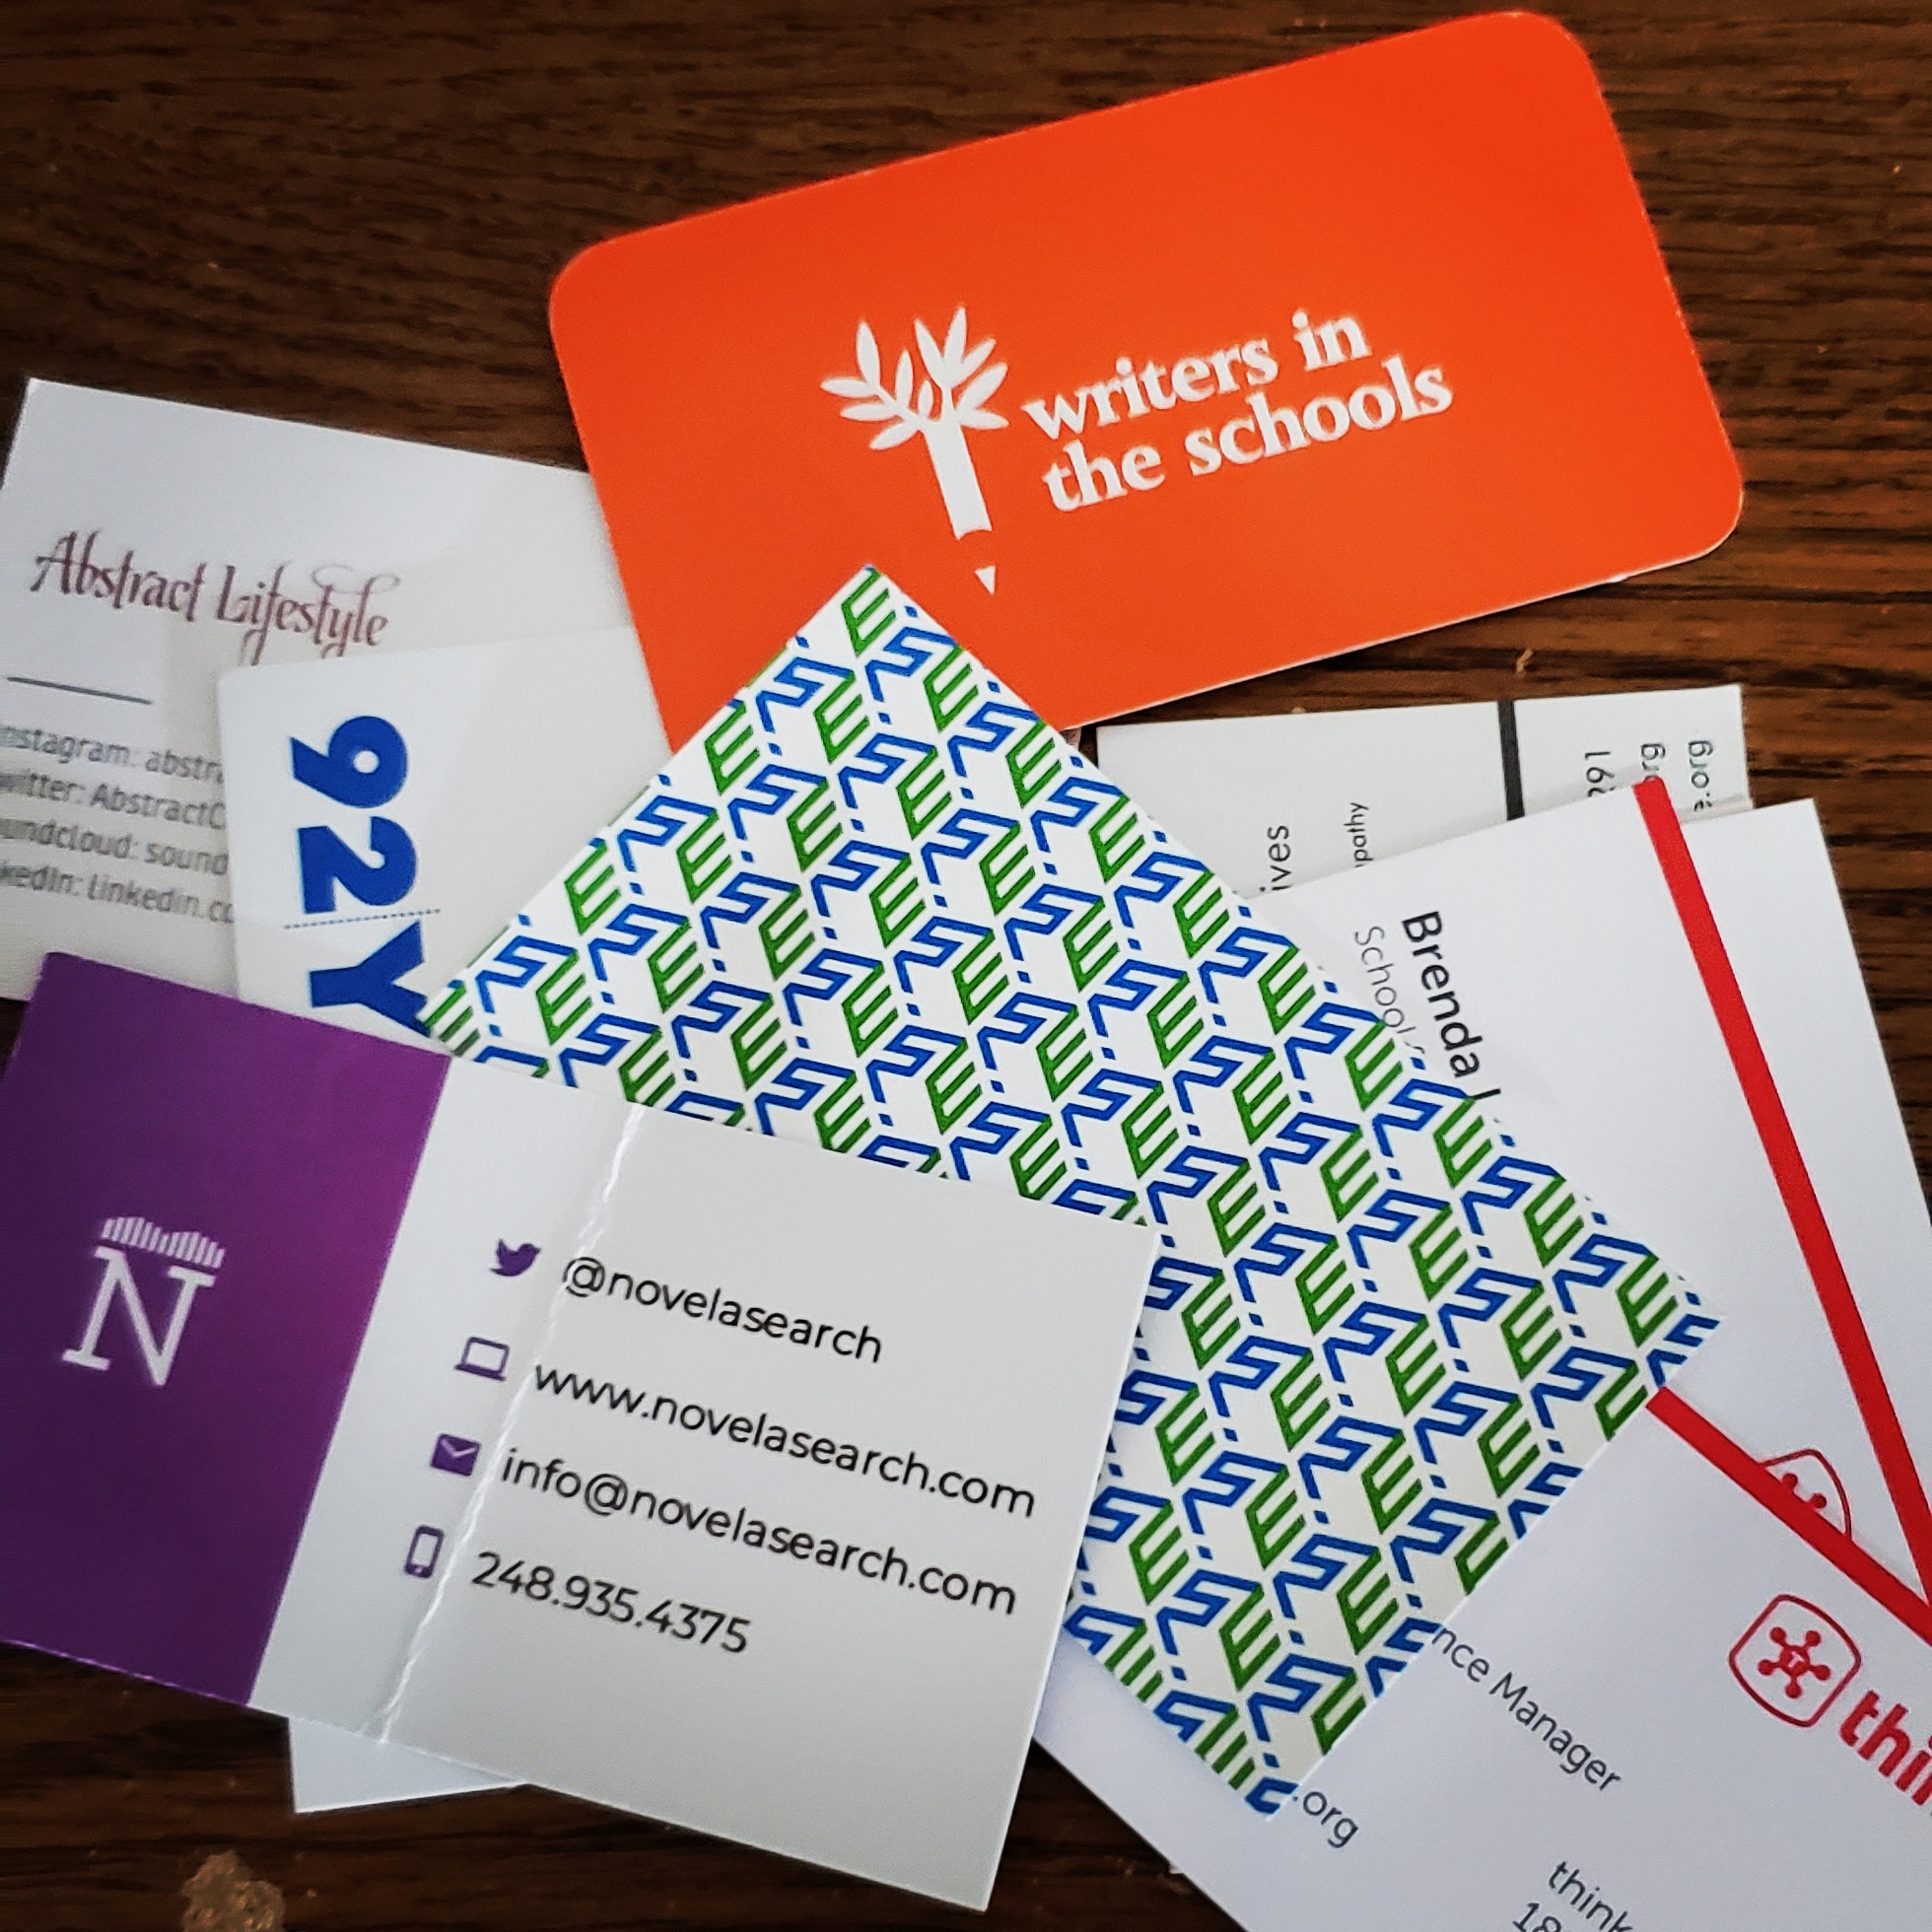 Pile of business cards, mostly white with colored text and images, on top of a brown wooden desk.